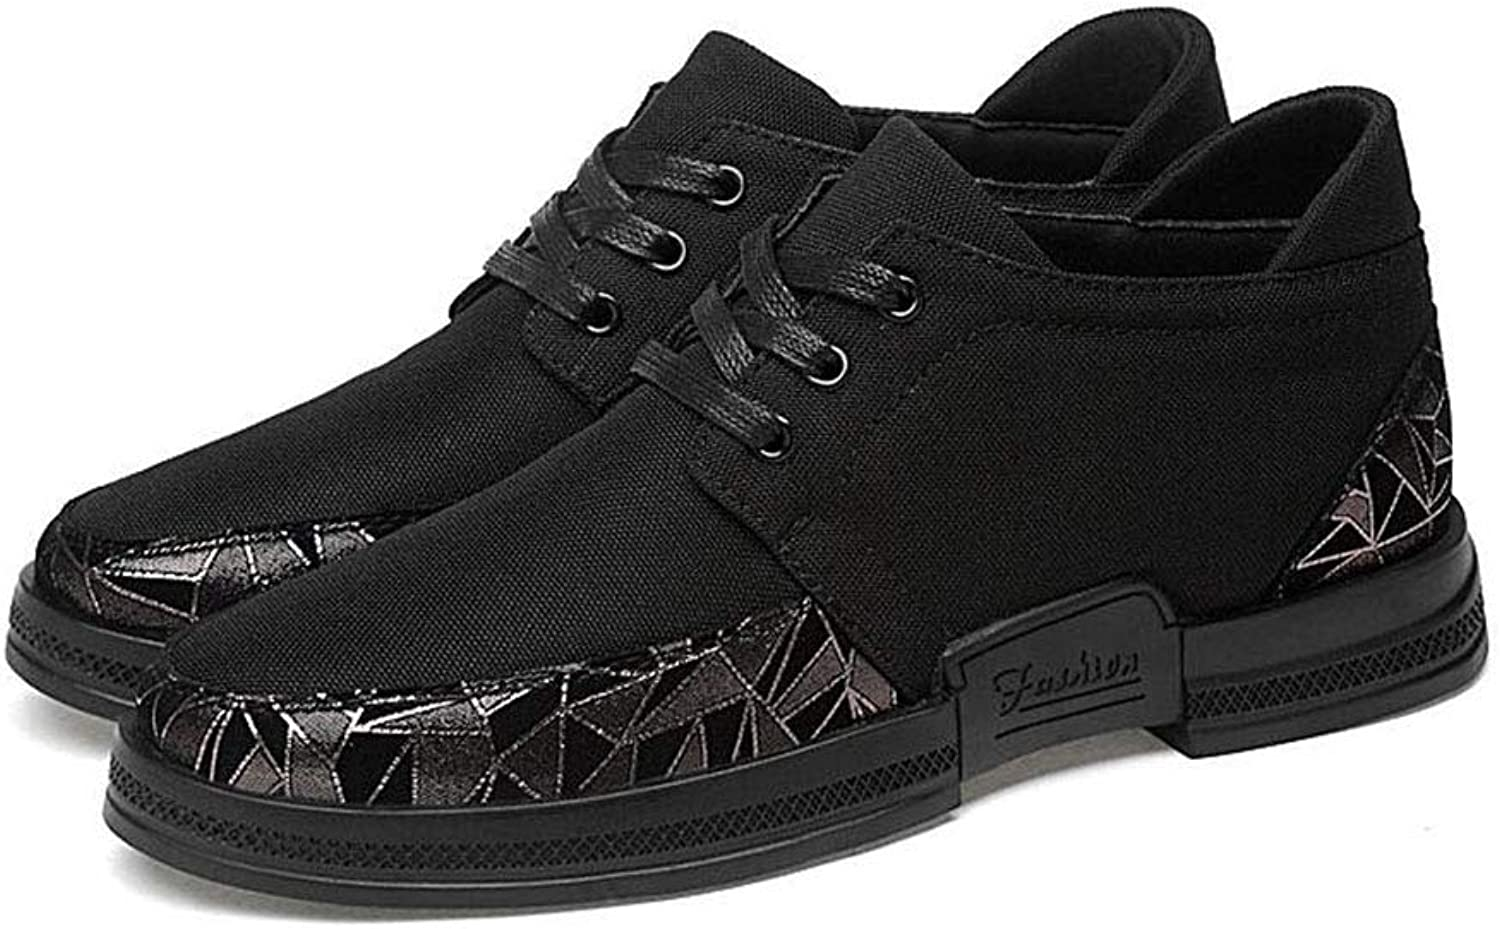 Y-H Men shoes,Spring New Lace-Up Formal Casual shoes, Student Flats Loafers, Road Cycling shoes Cycling shoes,Black,42